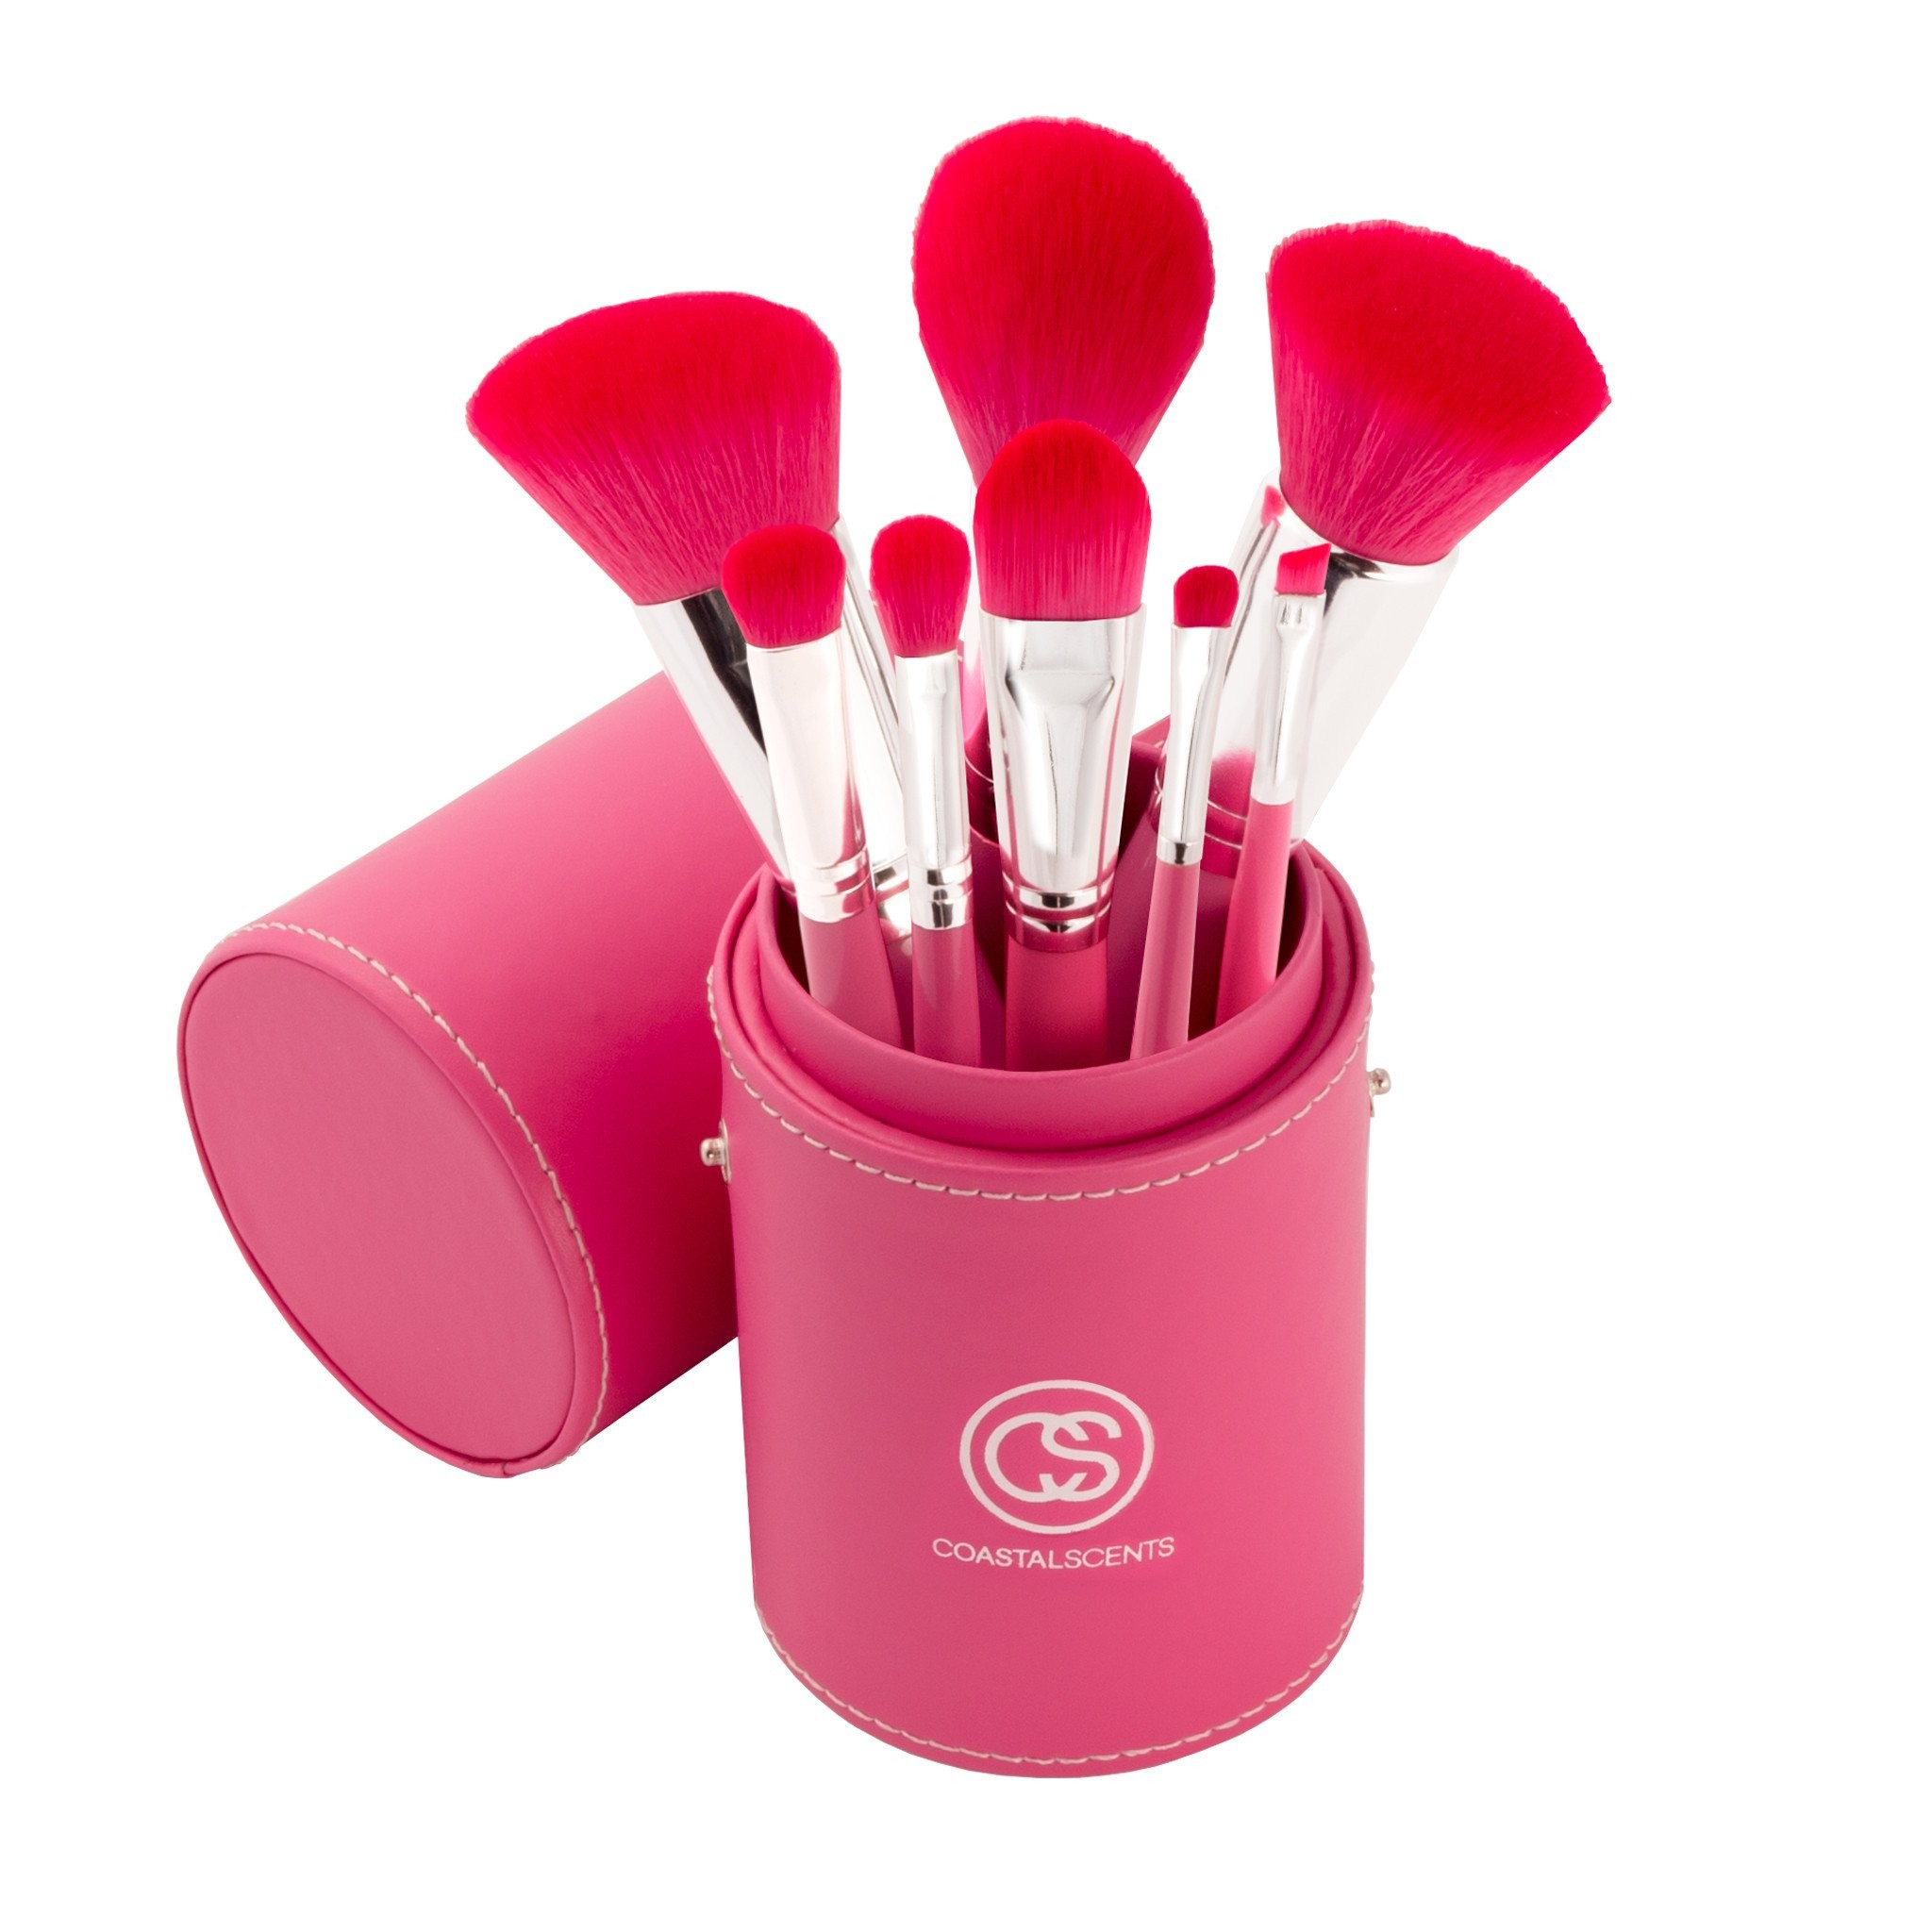 8-Teiliges Pinsel-Set - Primrose Brush Collection